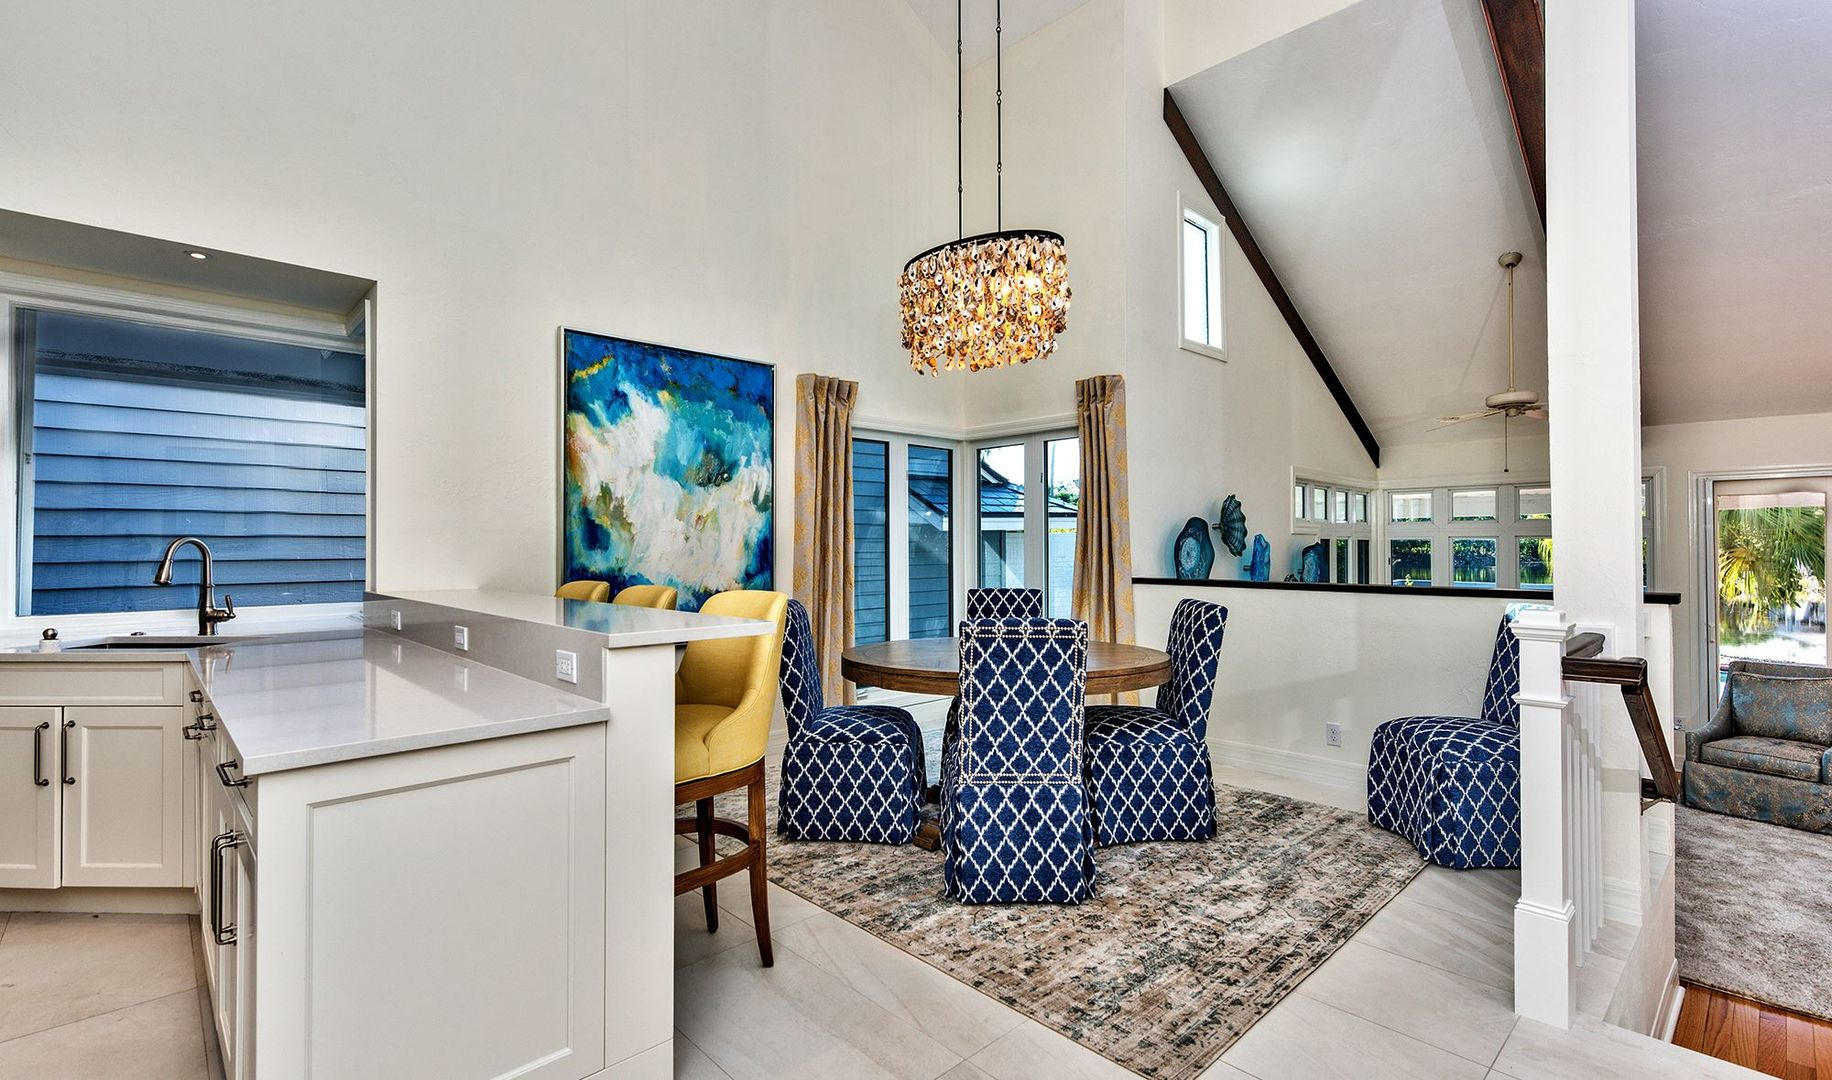 Home Remodeling in Naples